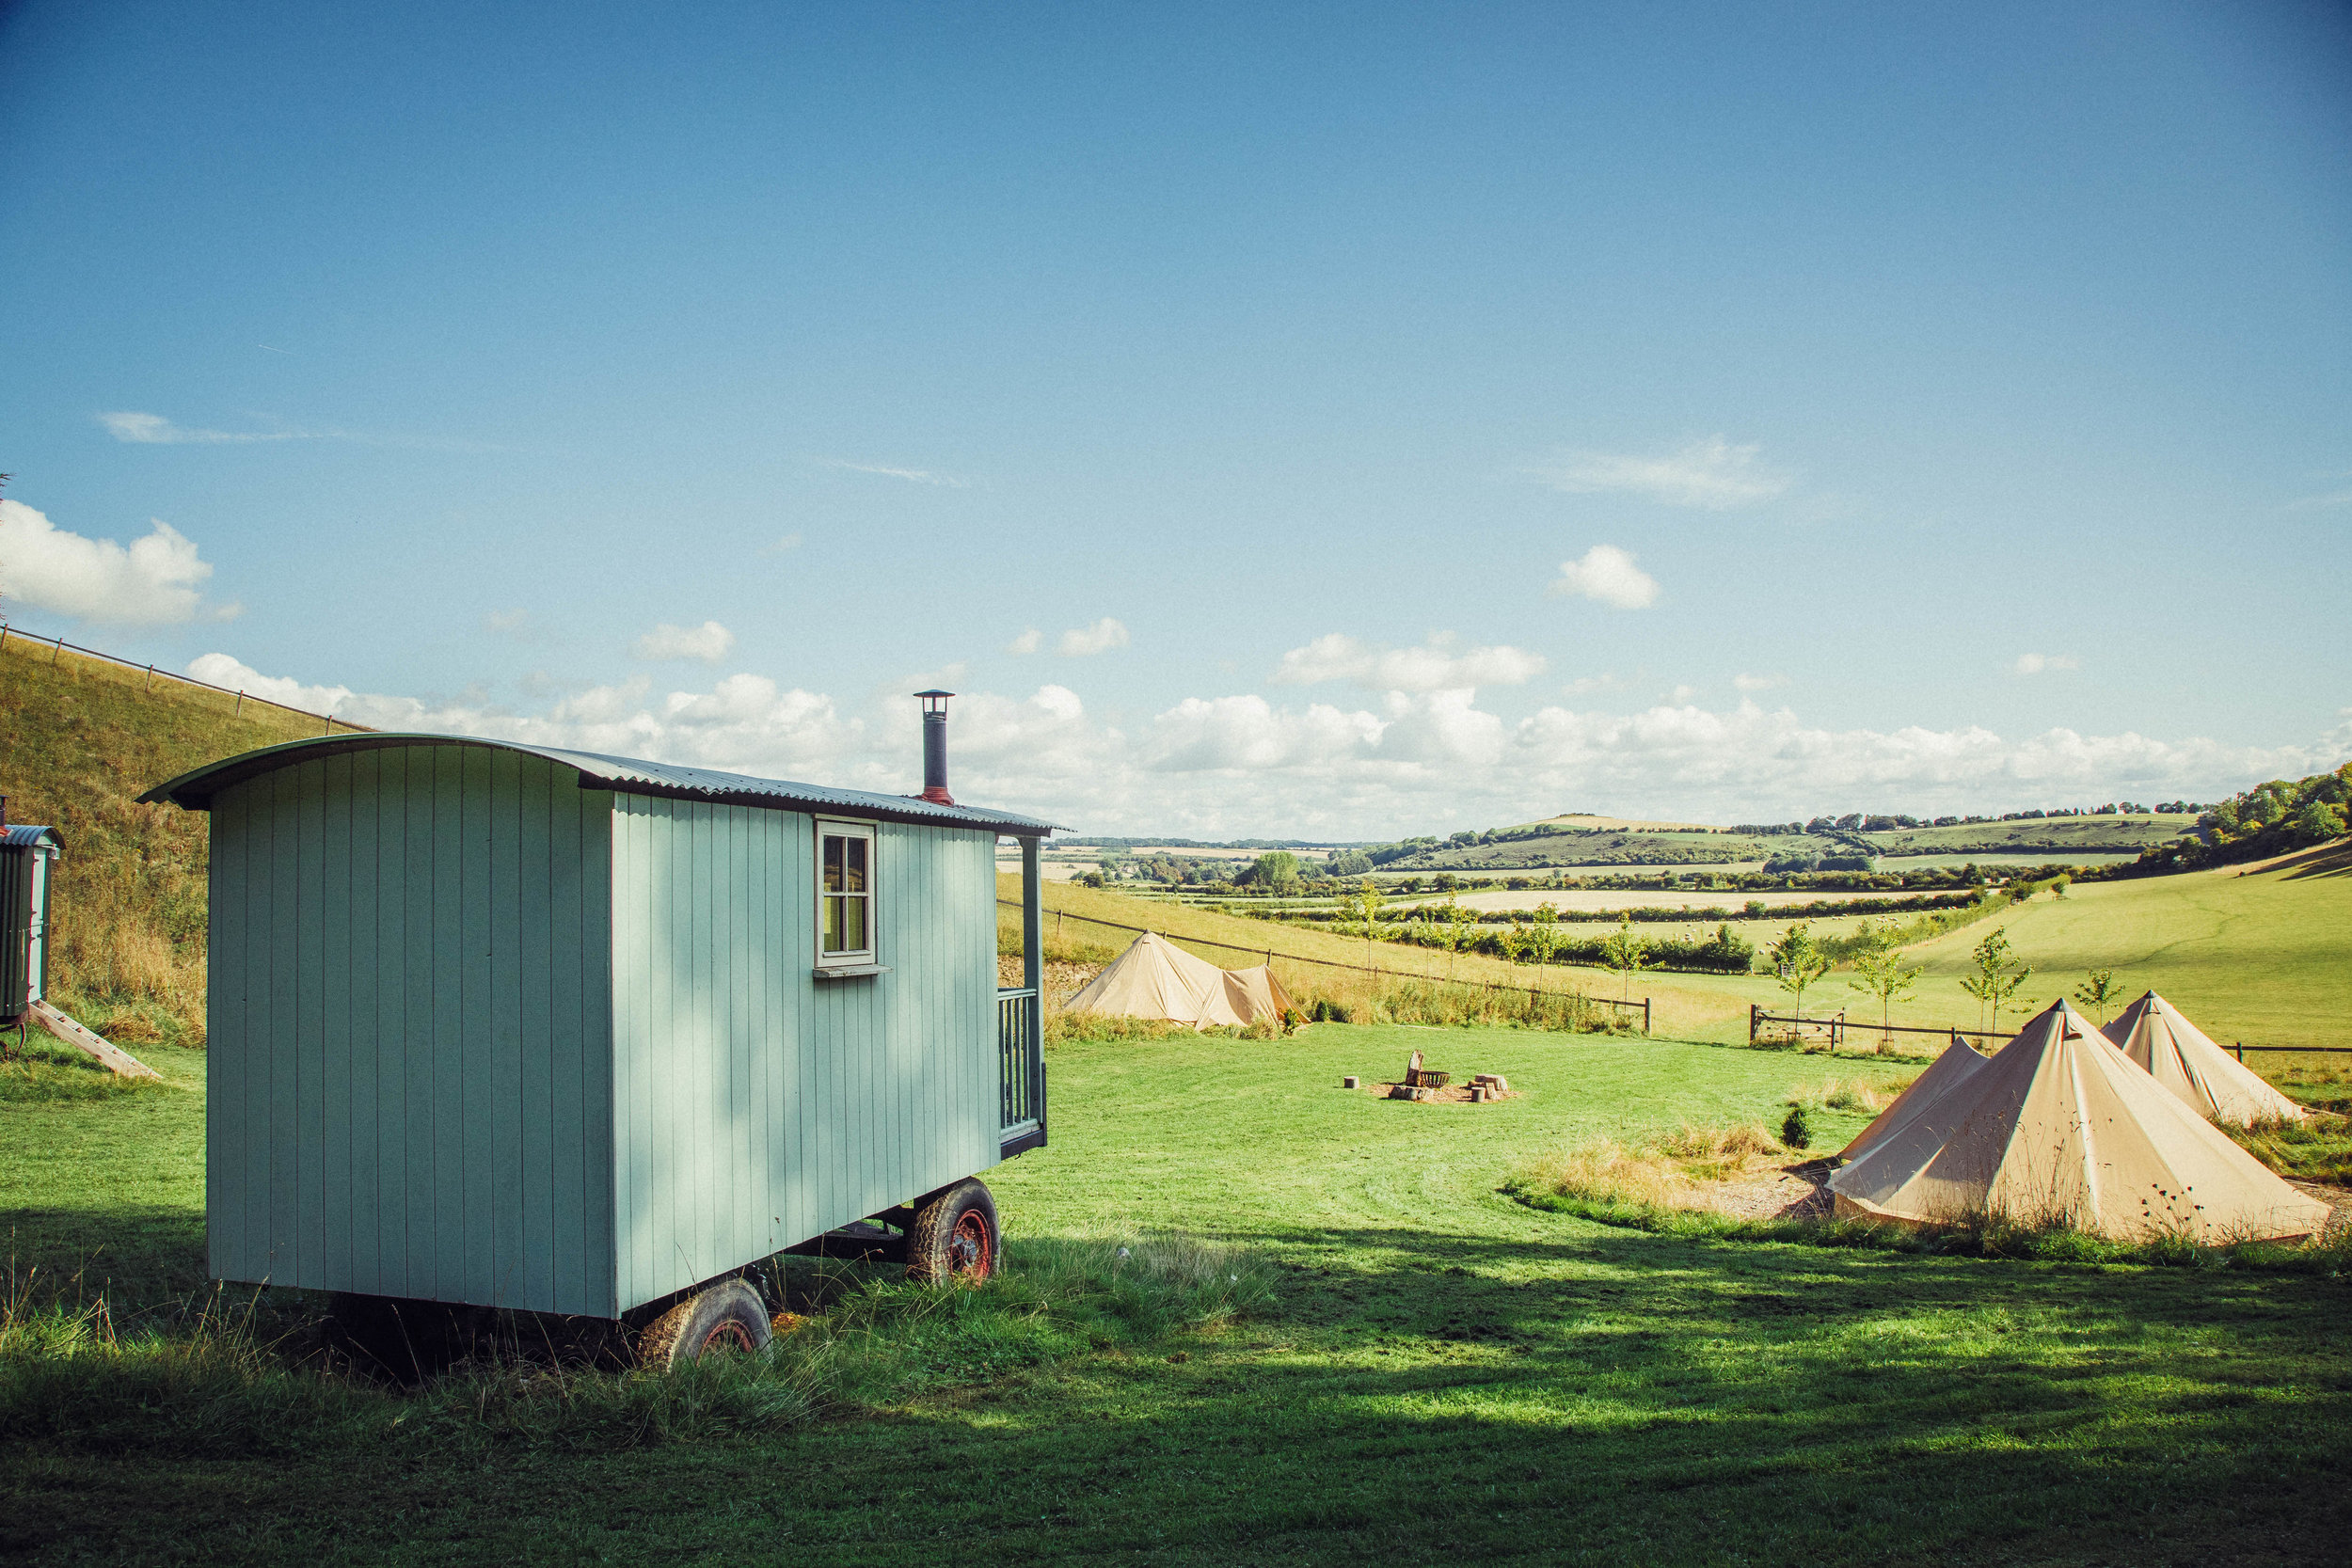 The Huts & Tents - Simple and comfortable sleeping accommodation positioned to catch the rising sun